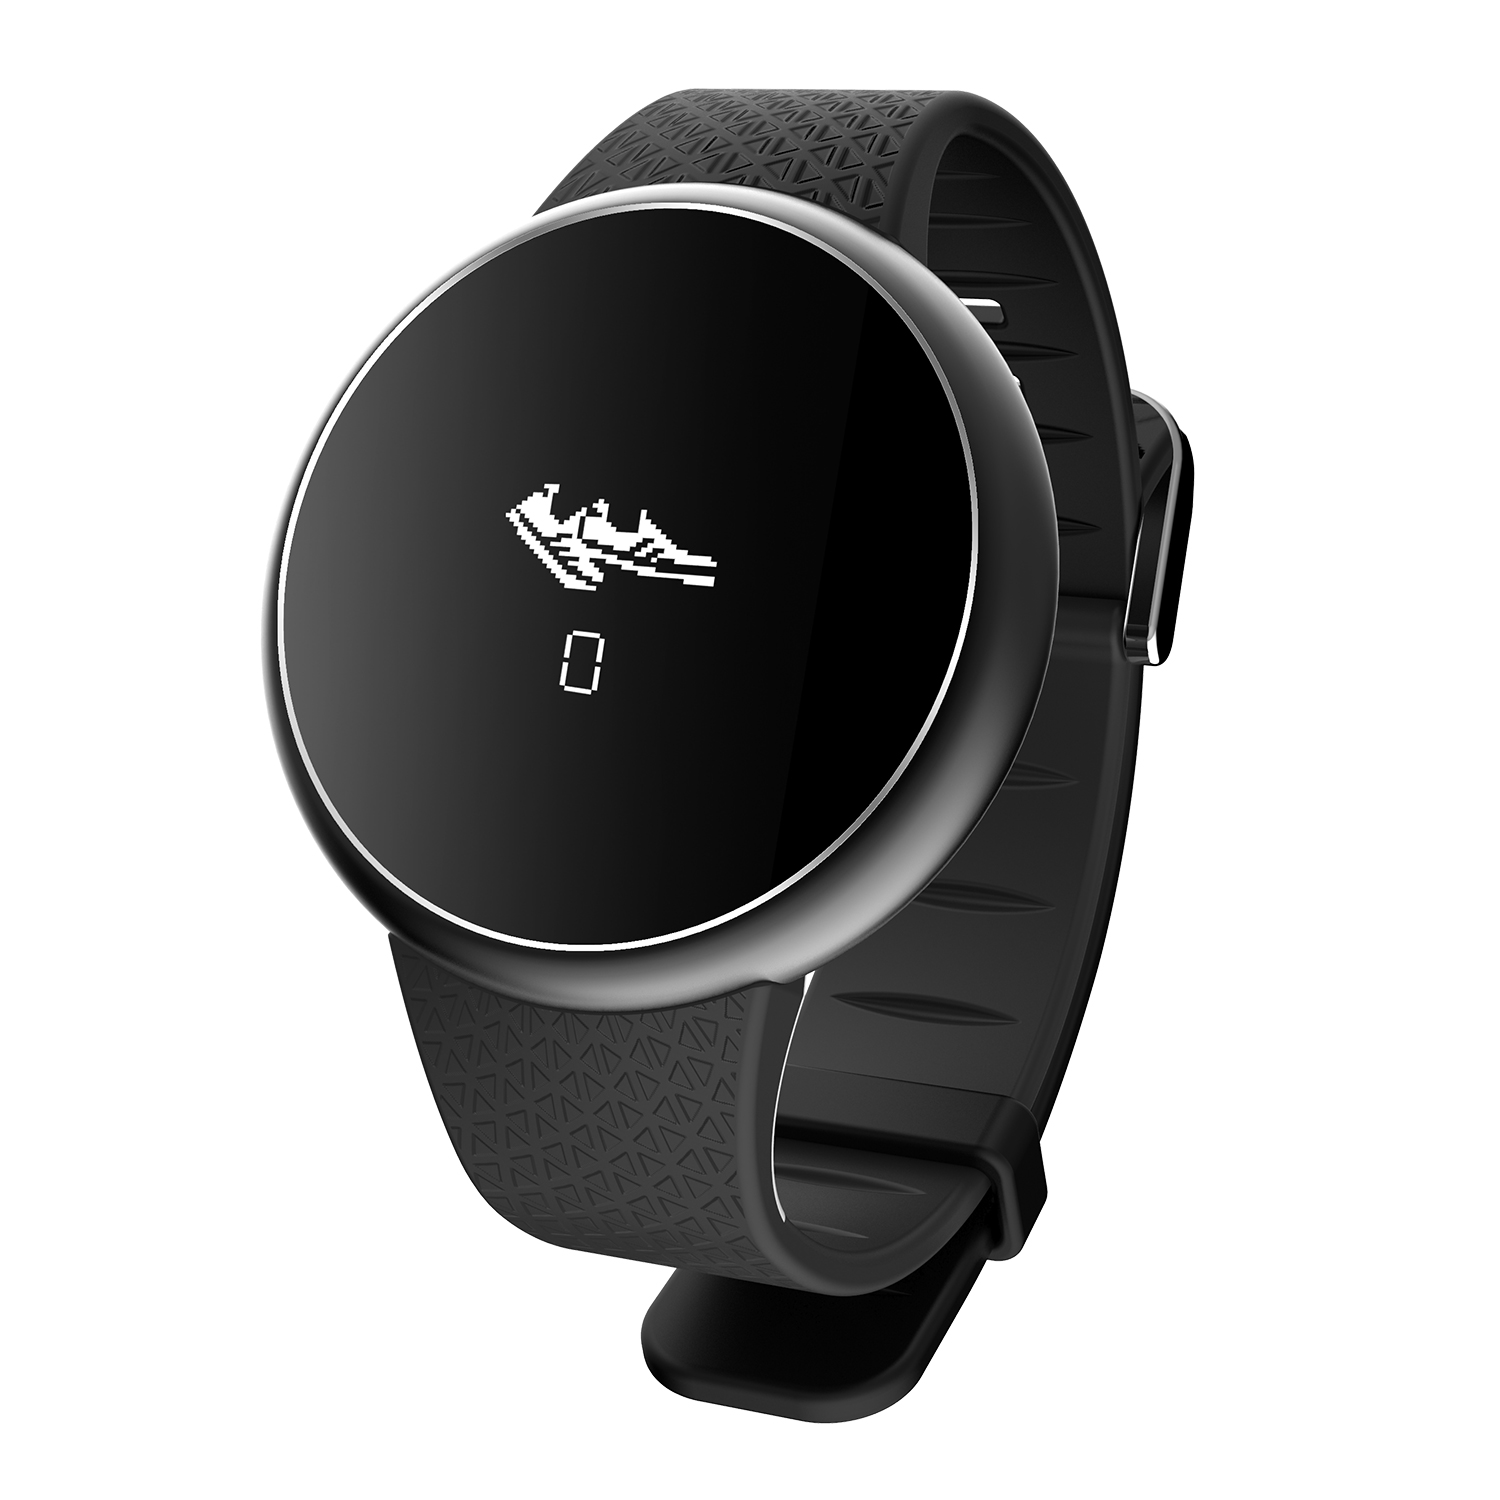 IMAGE Fitness Tracker Smart Watch Activity Tracker w Heart Rate Monitor Blood Pressure Test Step Counter GPS Tracker